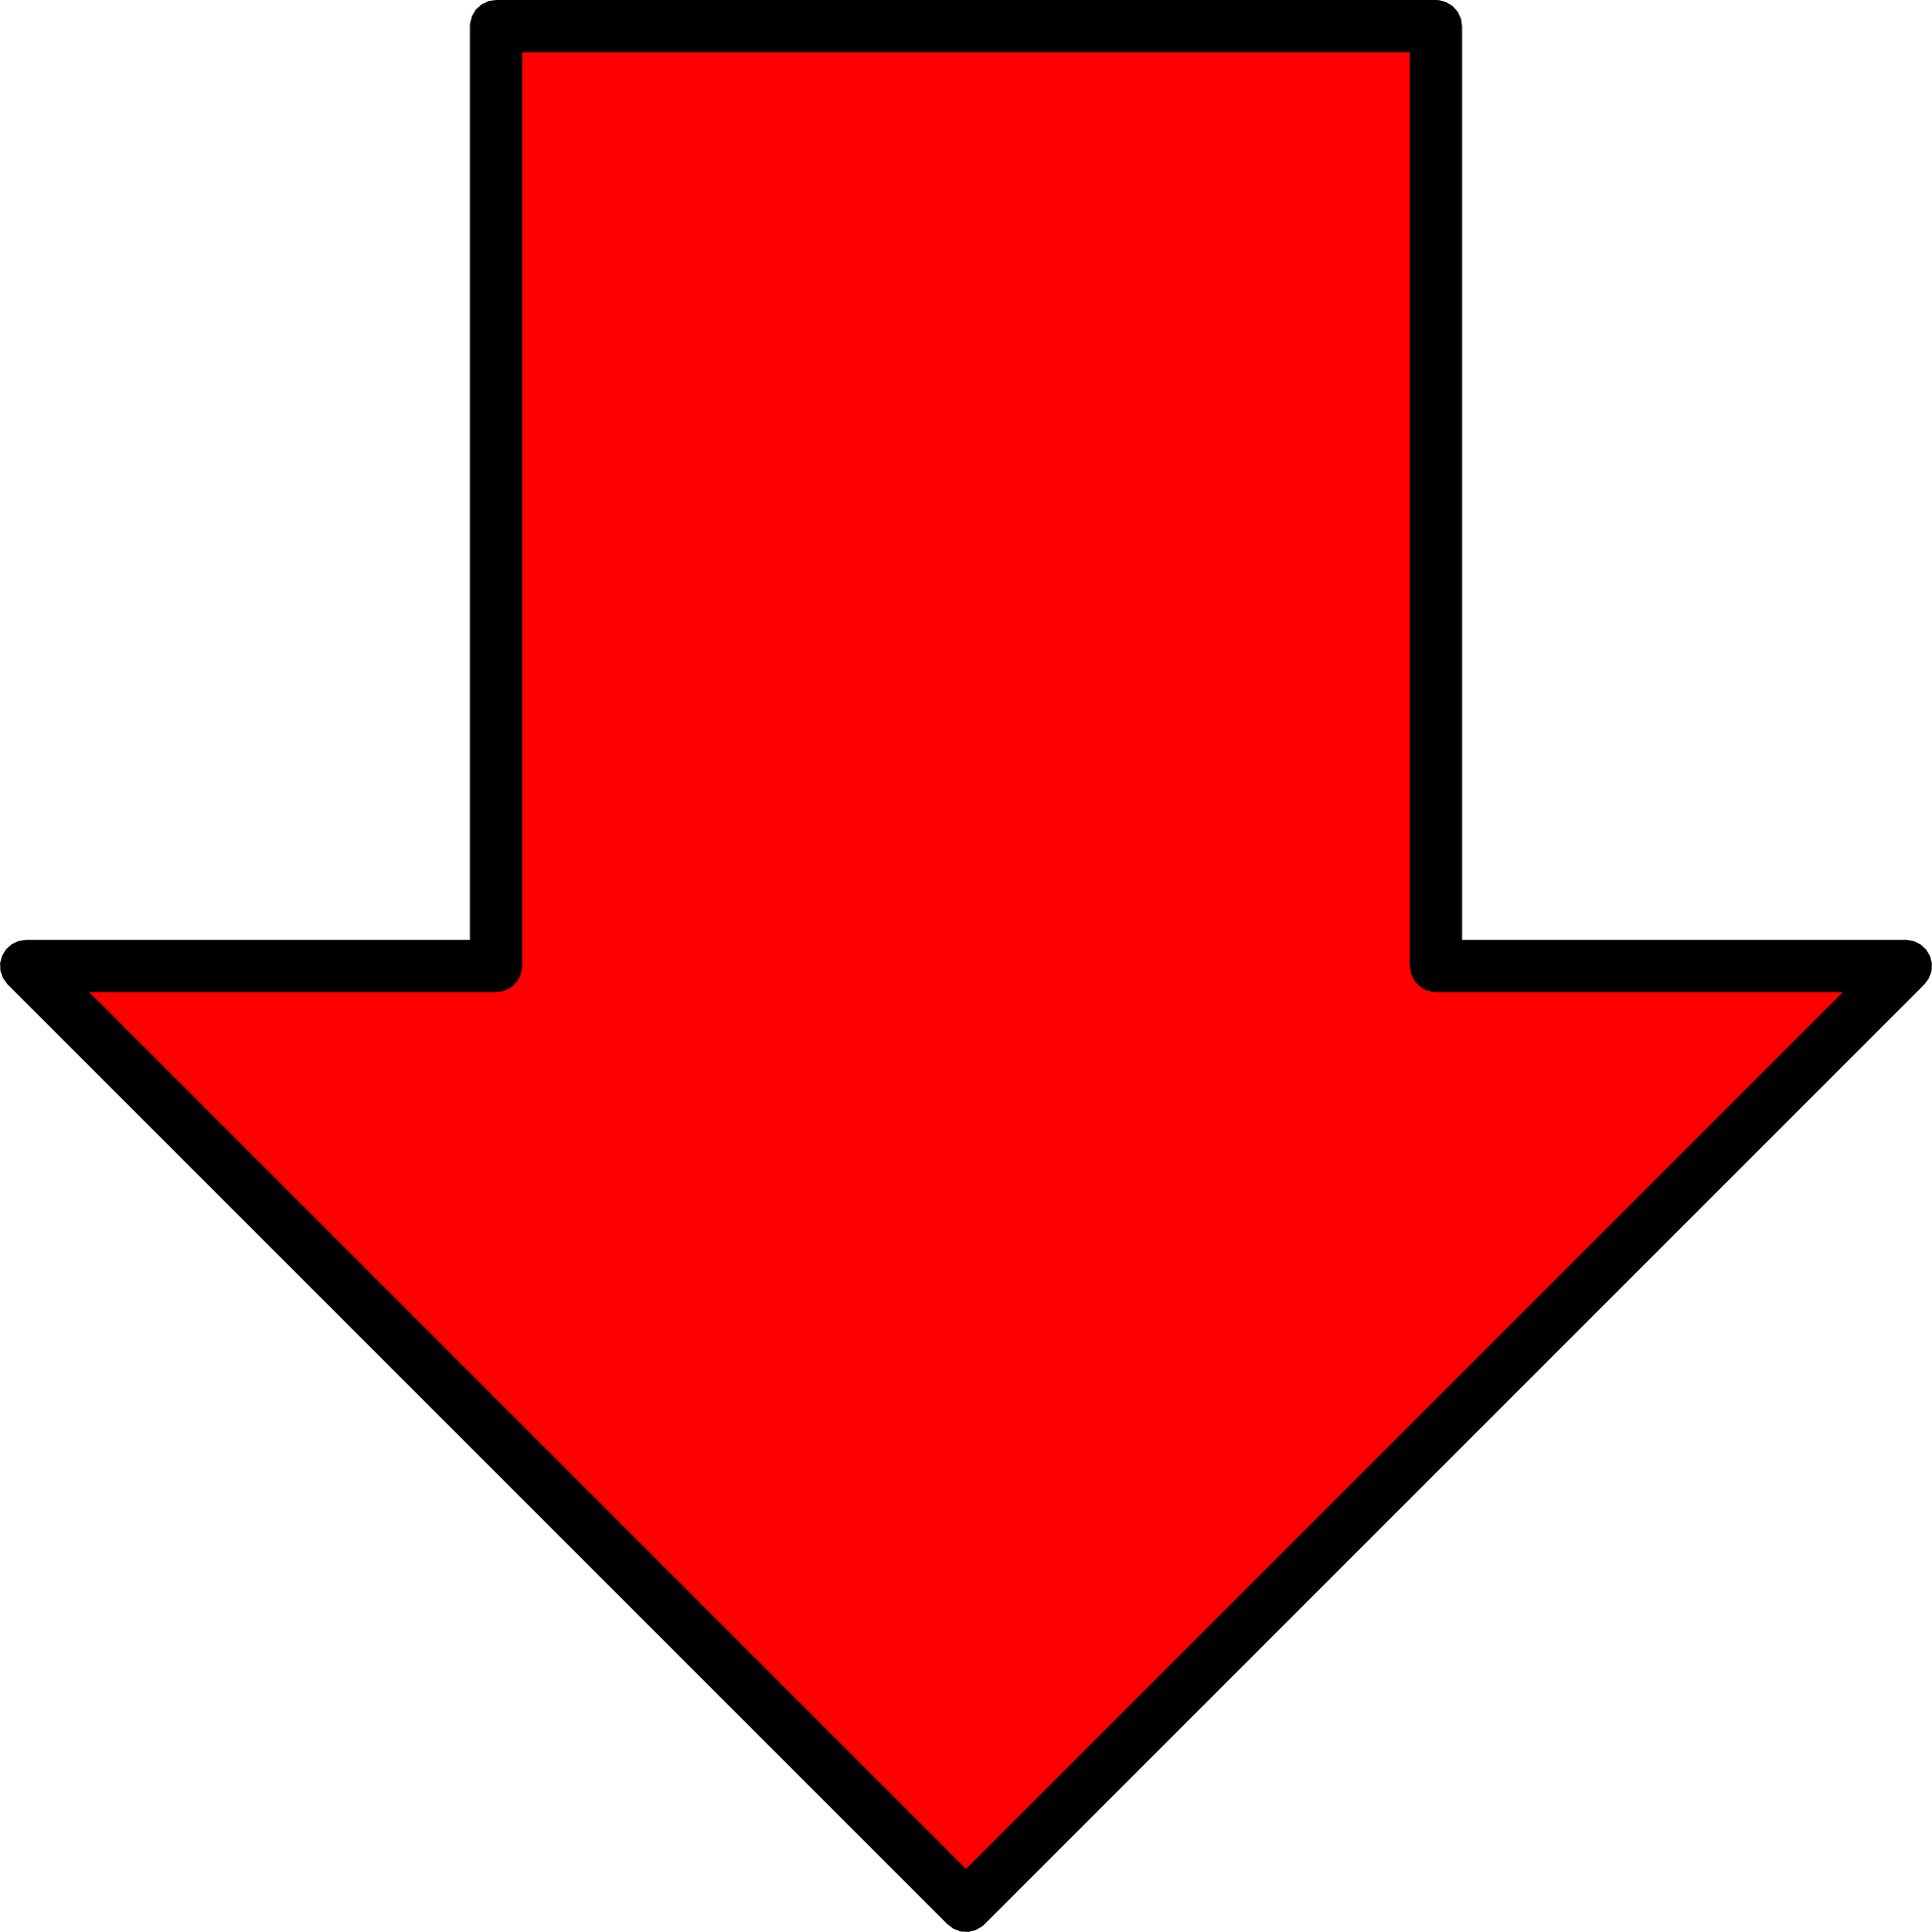 Simple arrow thick clipart graphic download Free Arrow Down, Download Free Clip Art, Free Clip Art on ... graphic download